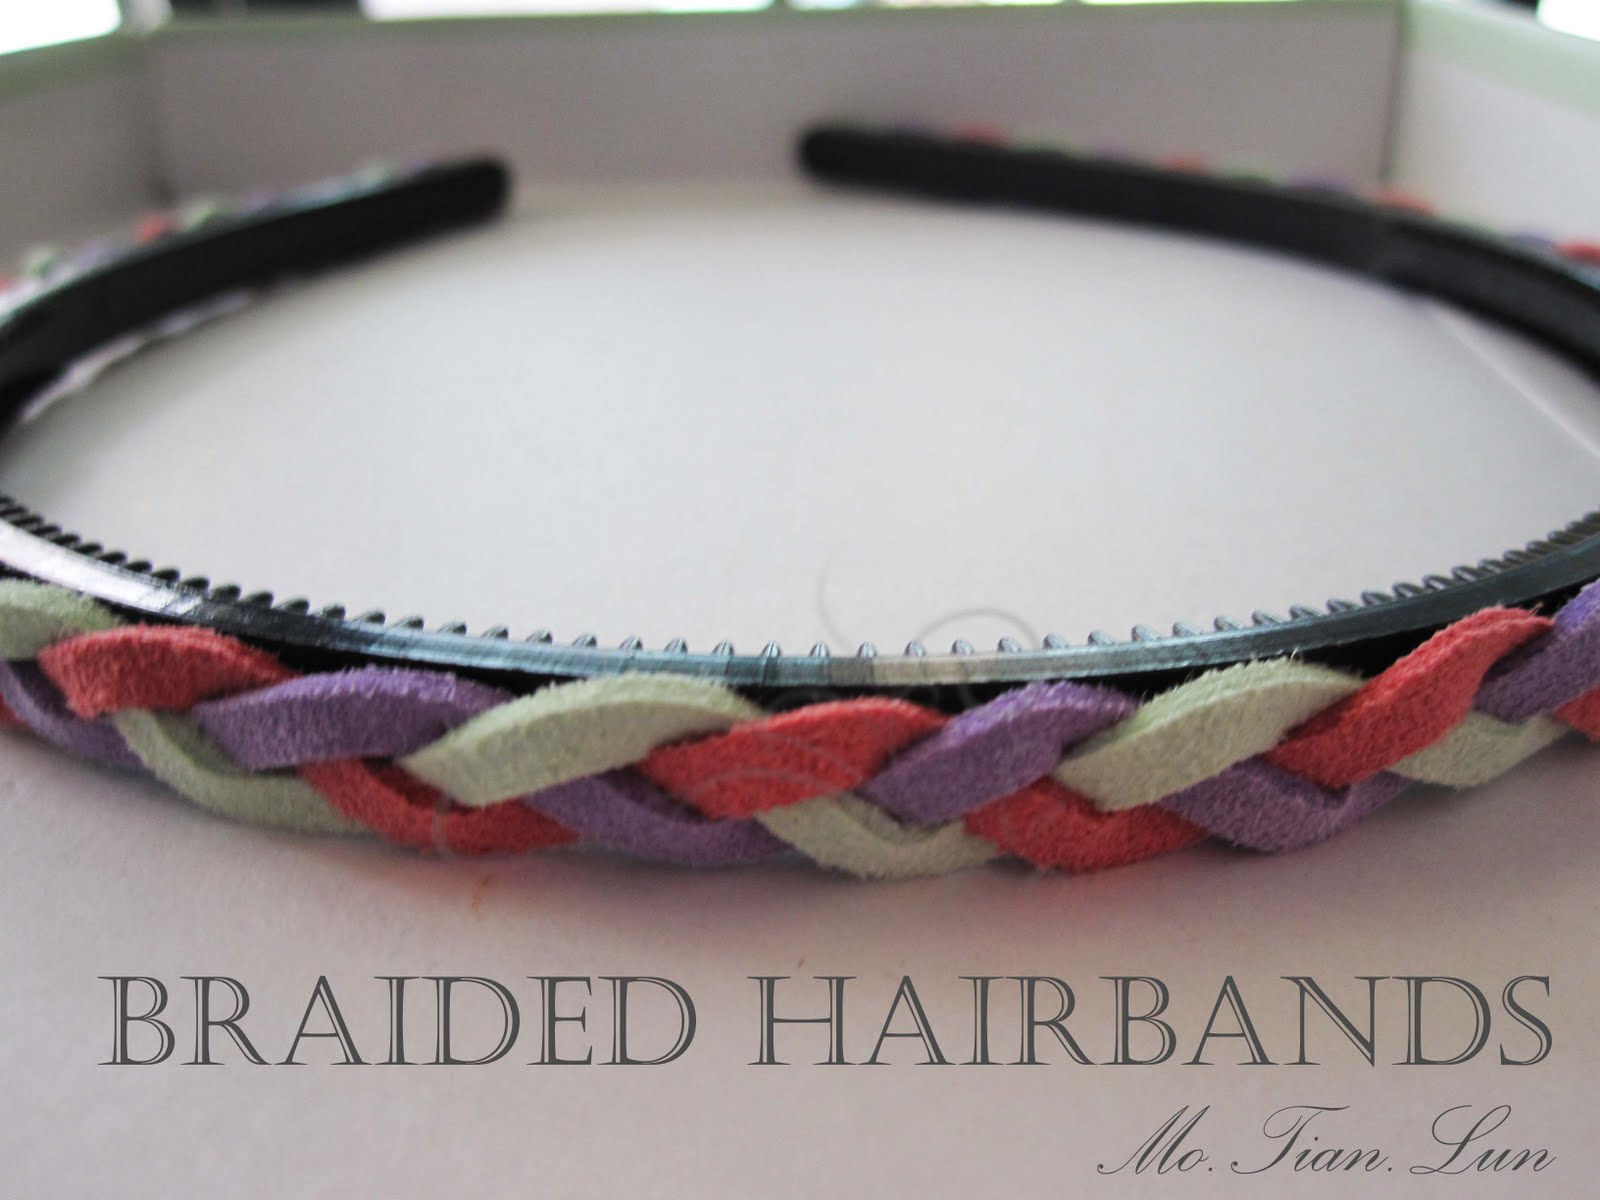 Braided Hairbands!